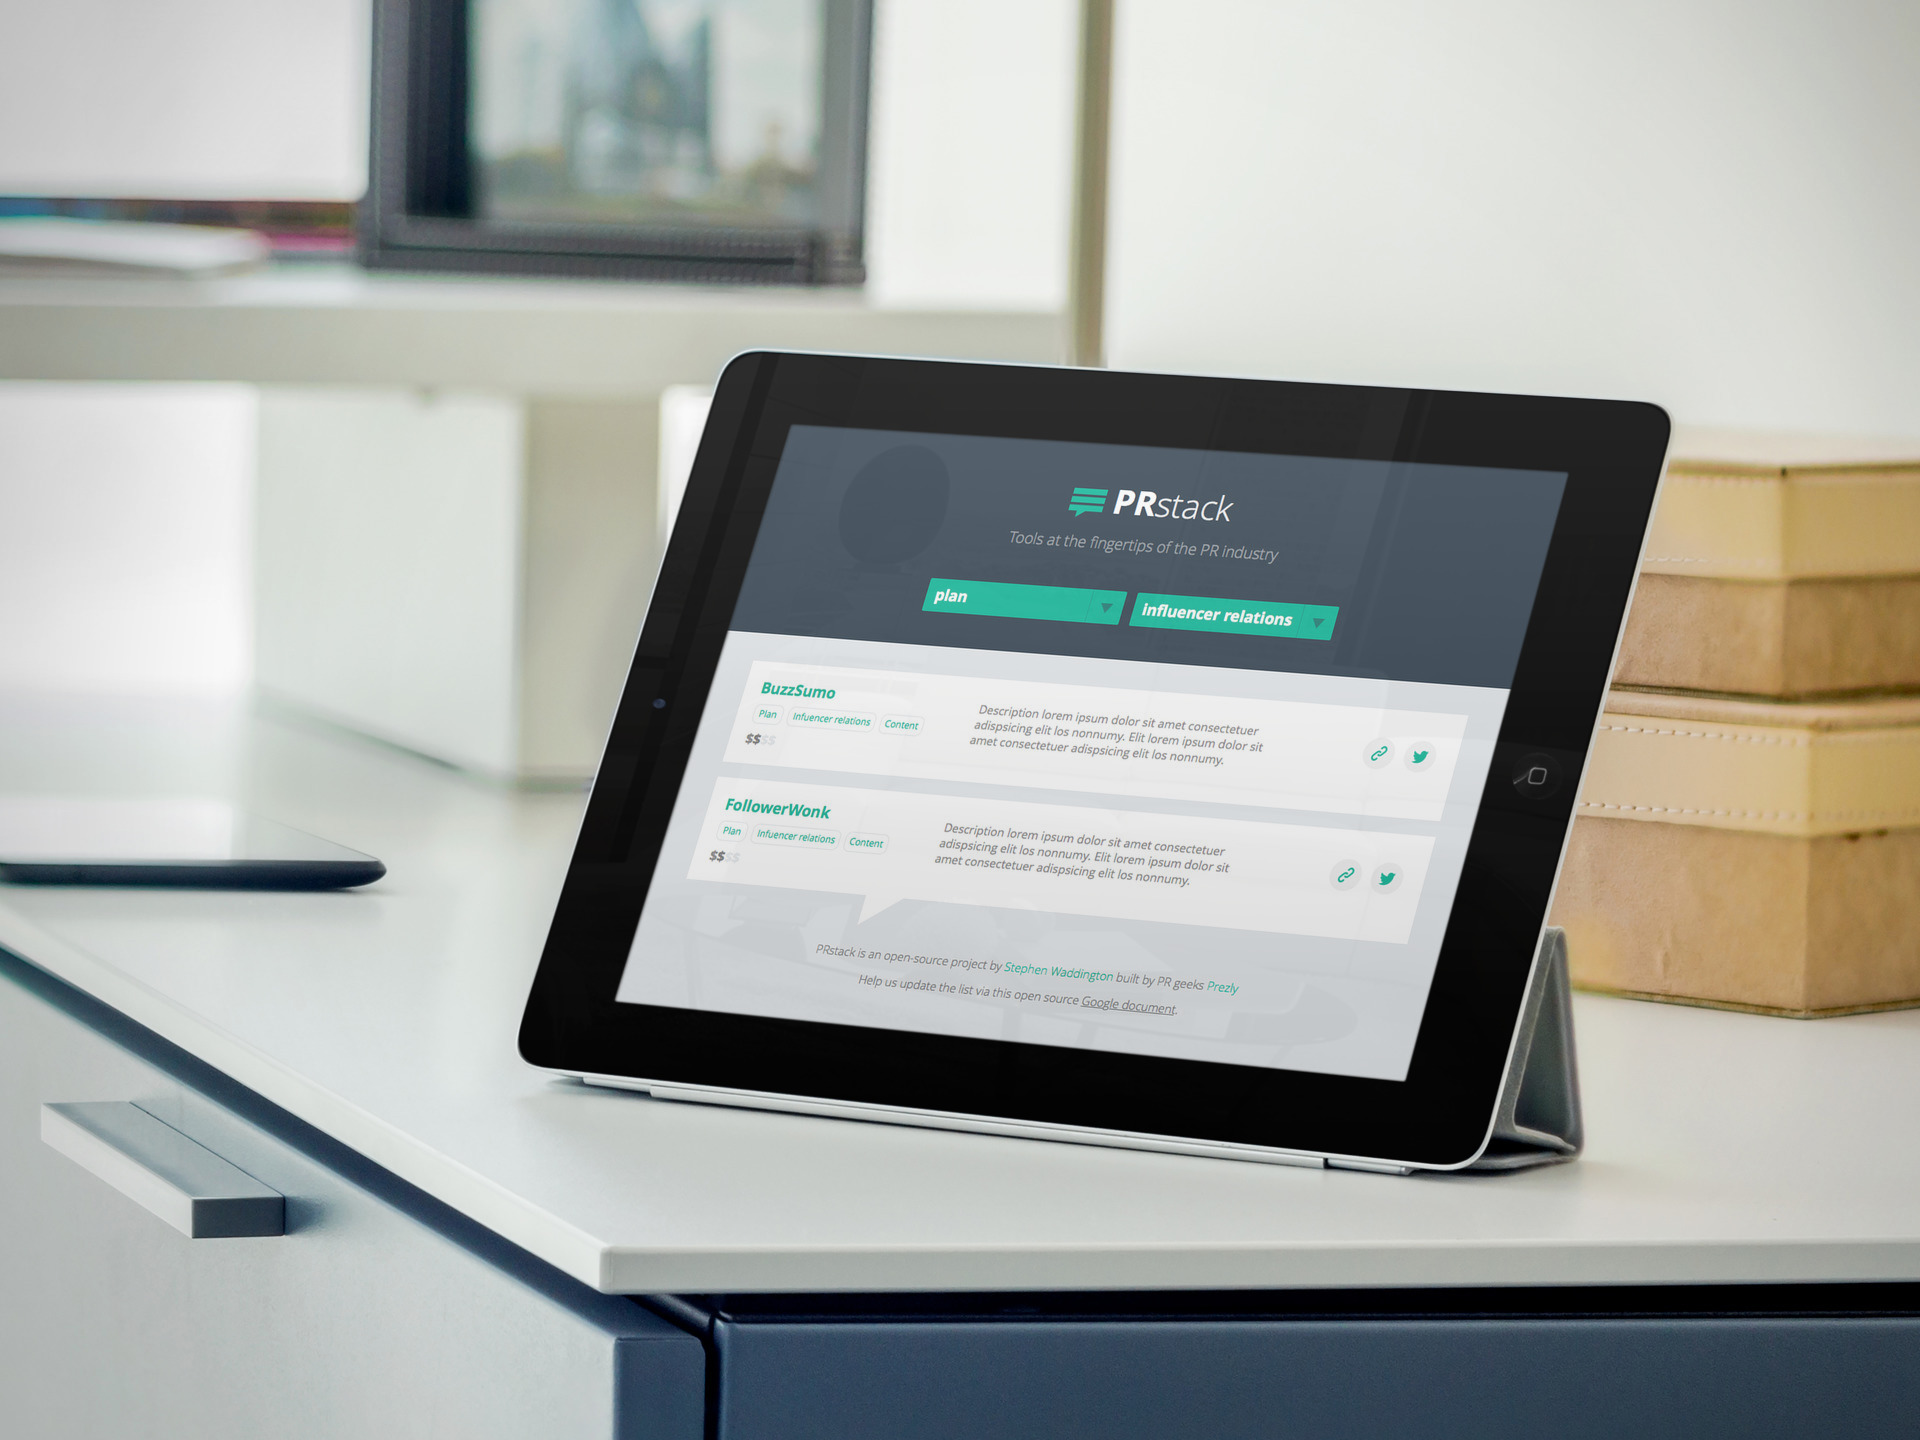 #PRStack Aims To Demystify The Plethora Of PR Technology Tools